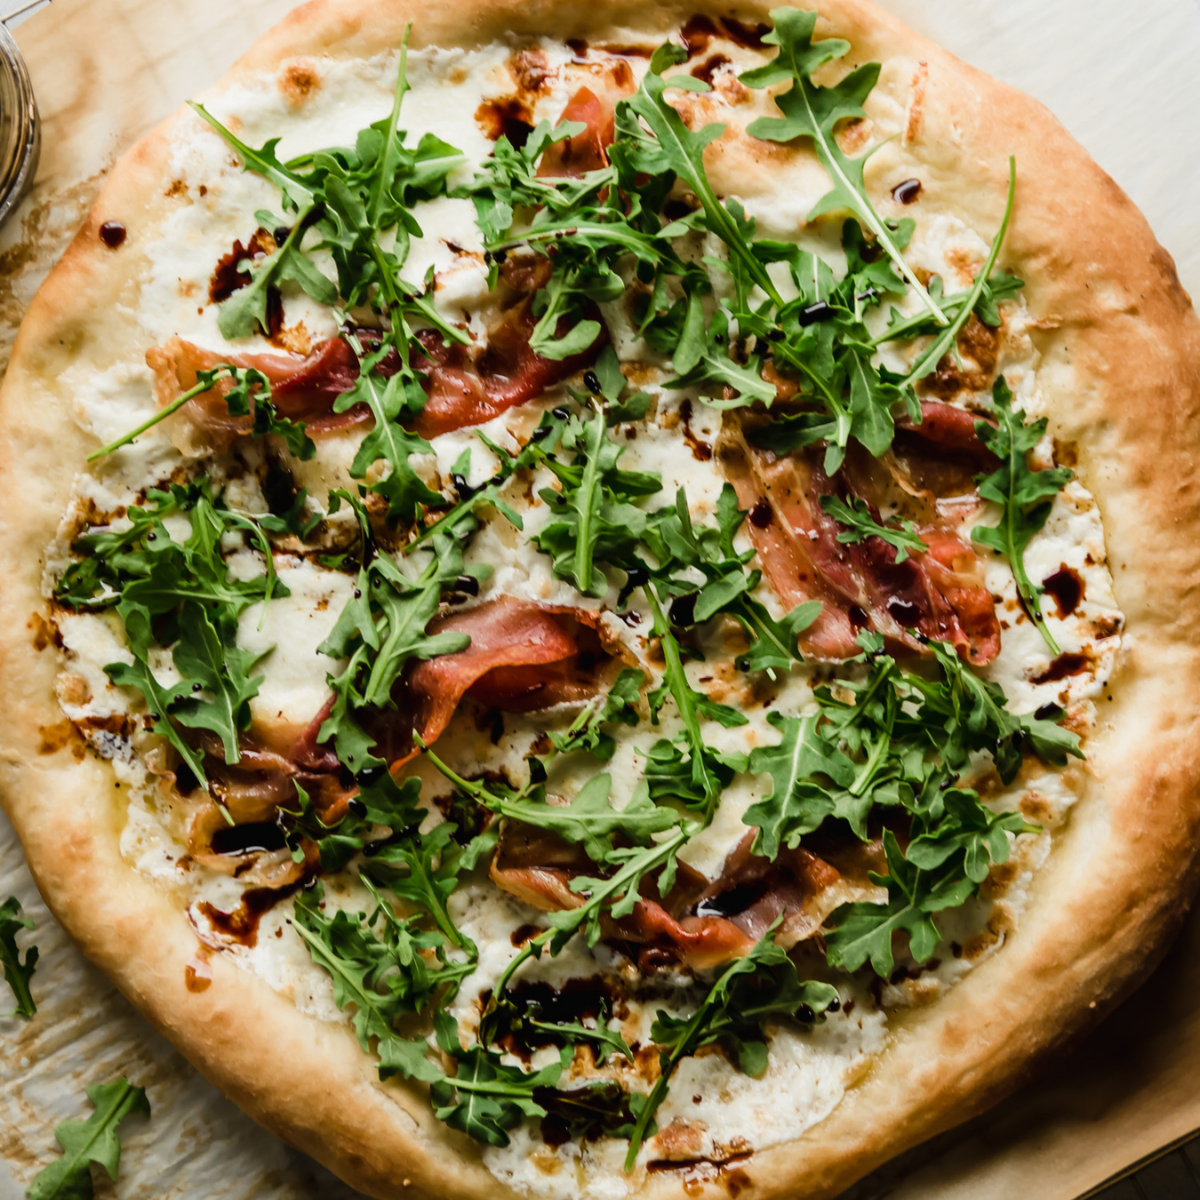 White pizza topped with prosciutto, arugula, and mozzarella, sitting on a wire cooling rack.